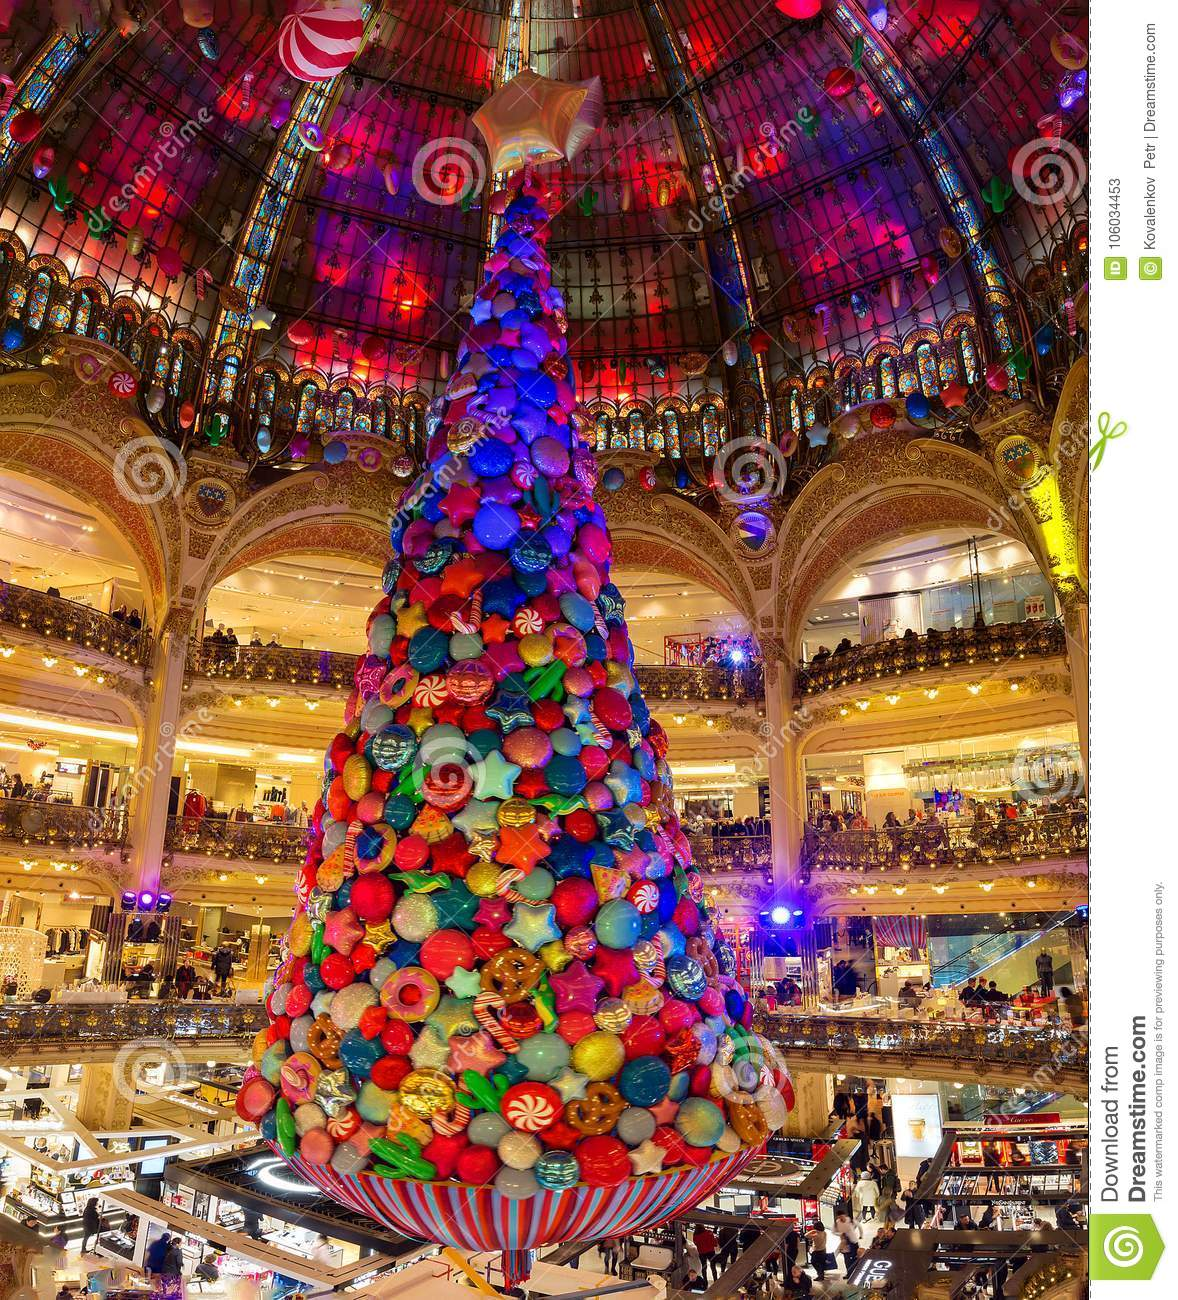 Christmas In France Decorations.The Christmas Decorations At Shopping Center Galeries